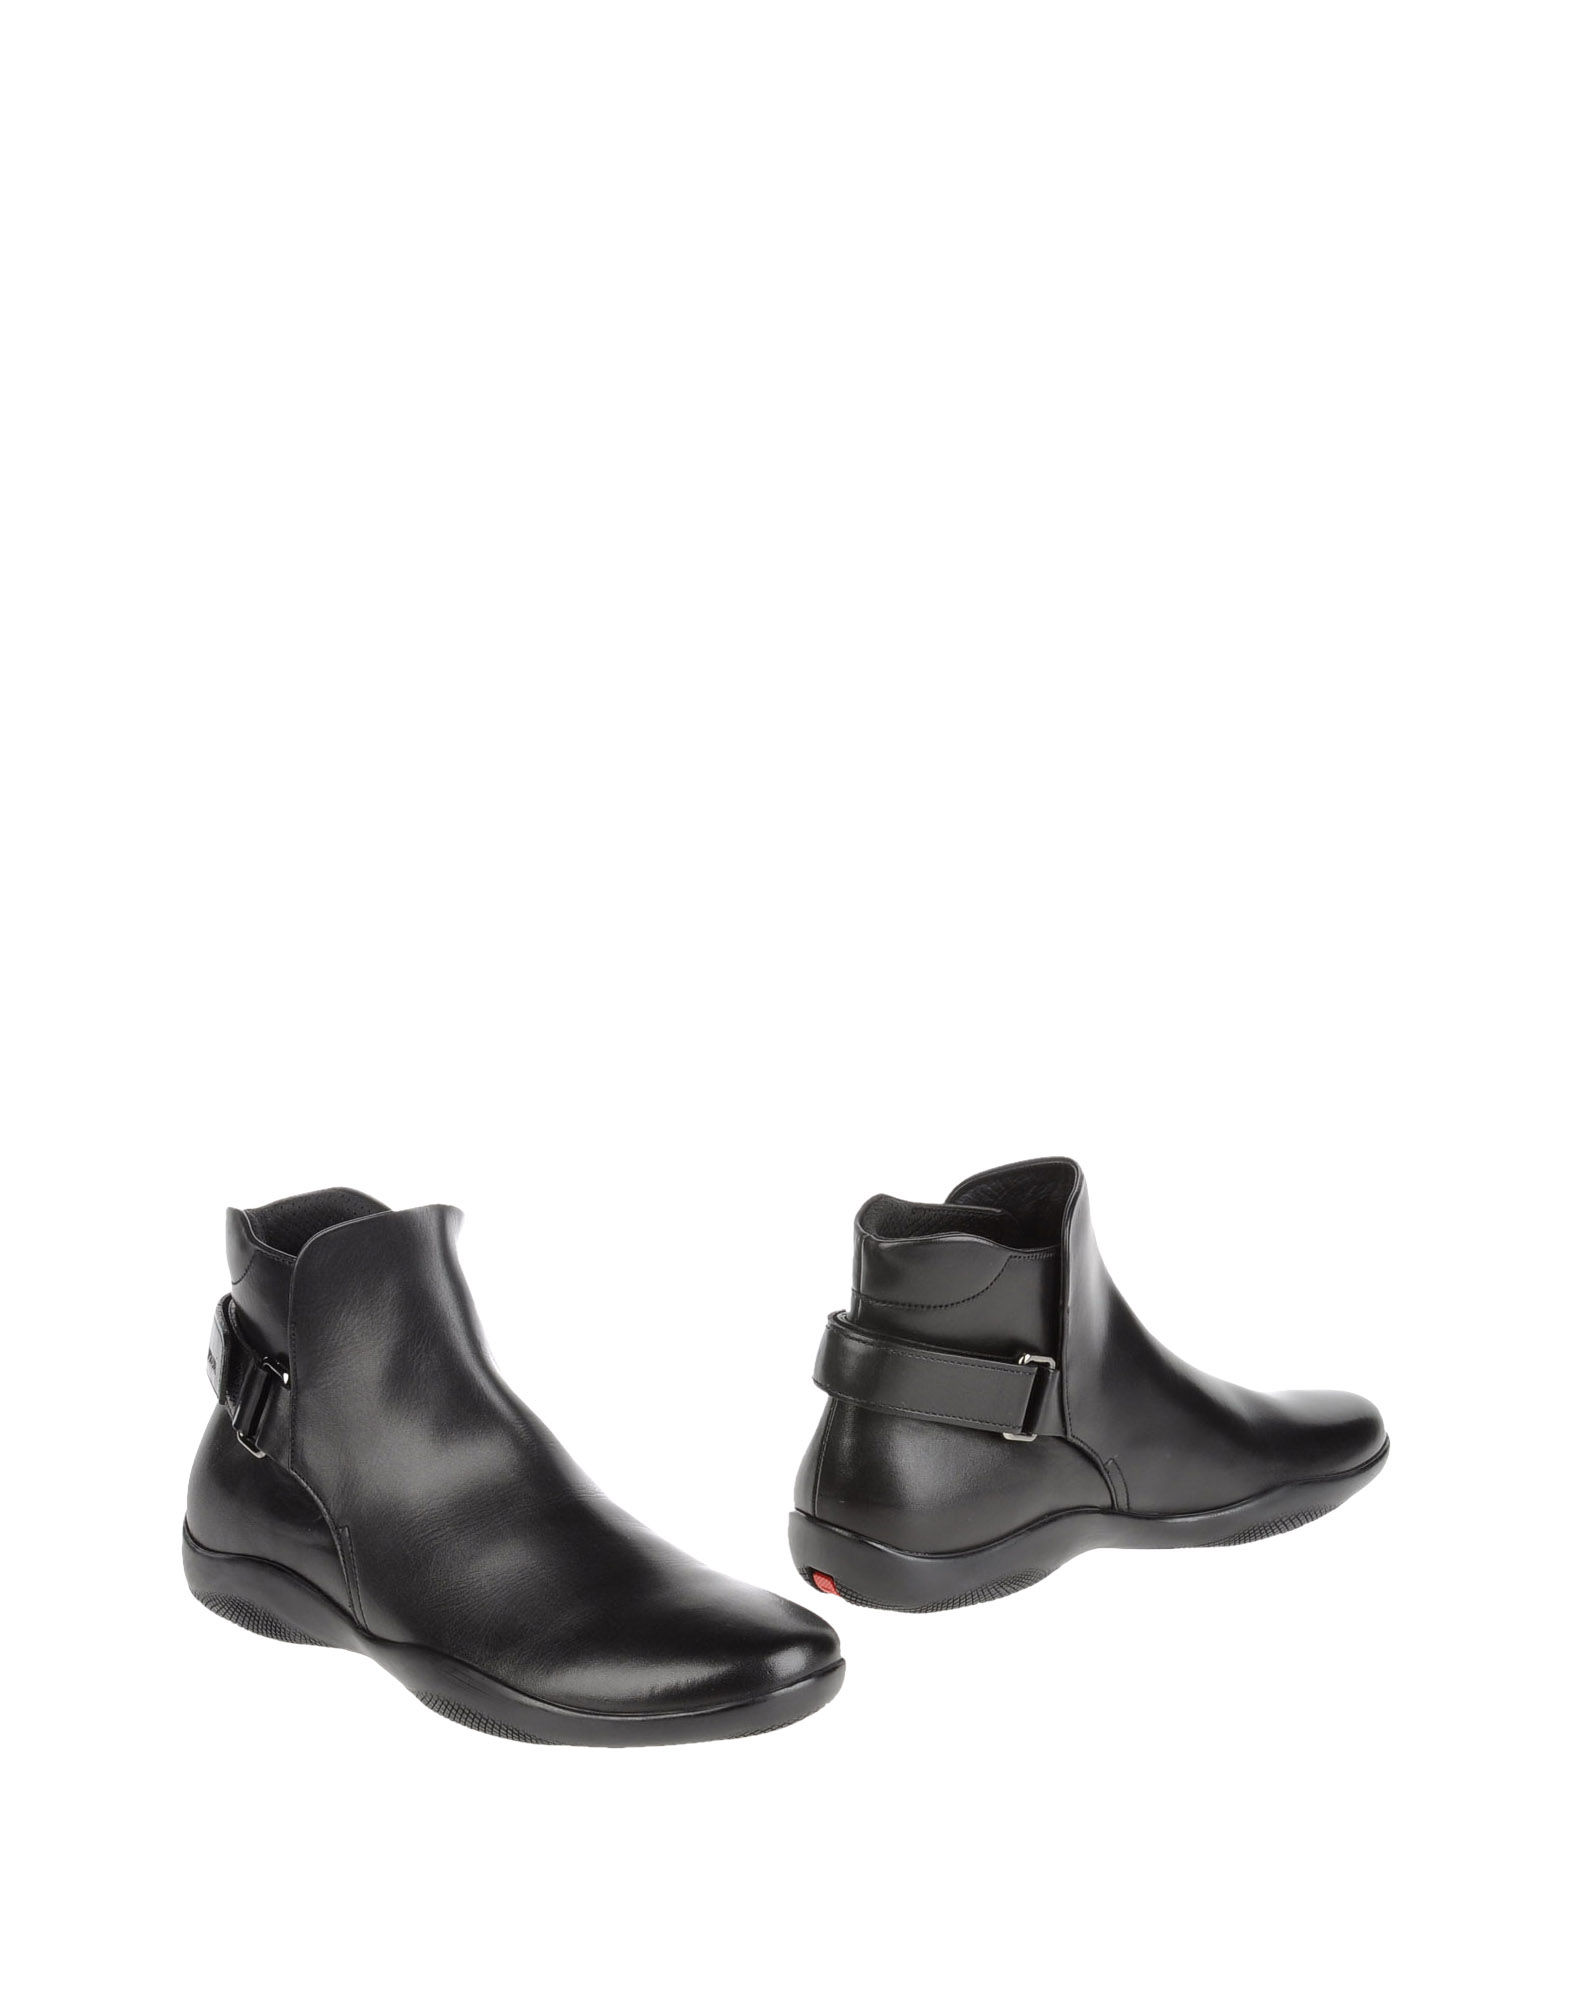 Prada Sport Ankle Boots In Black For Men Lyst